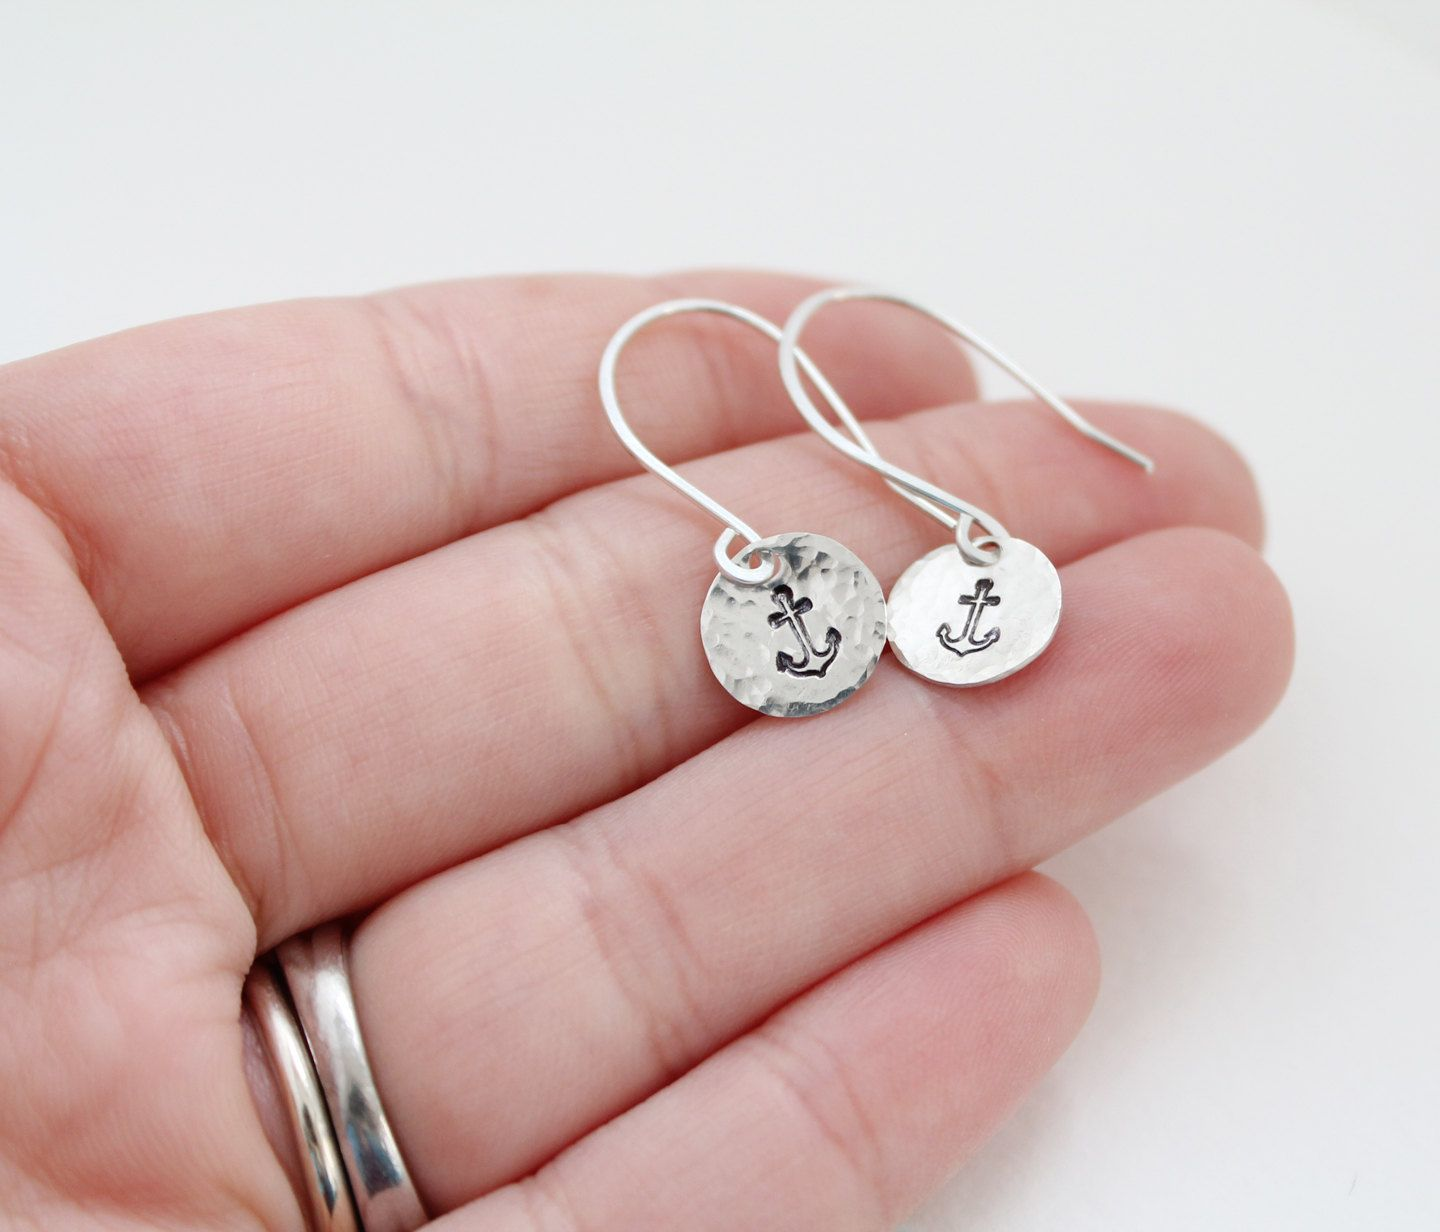 Tiny Silver Anchor Earrings - Hand Stamped Nautical Jewelry Sterling ...